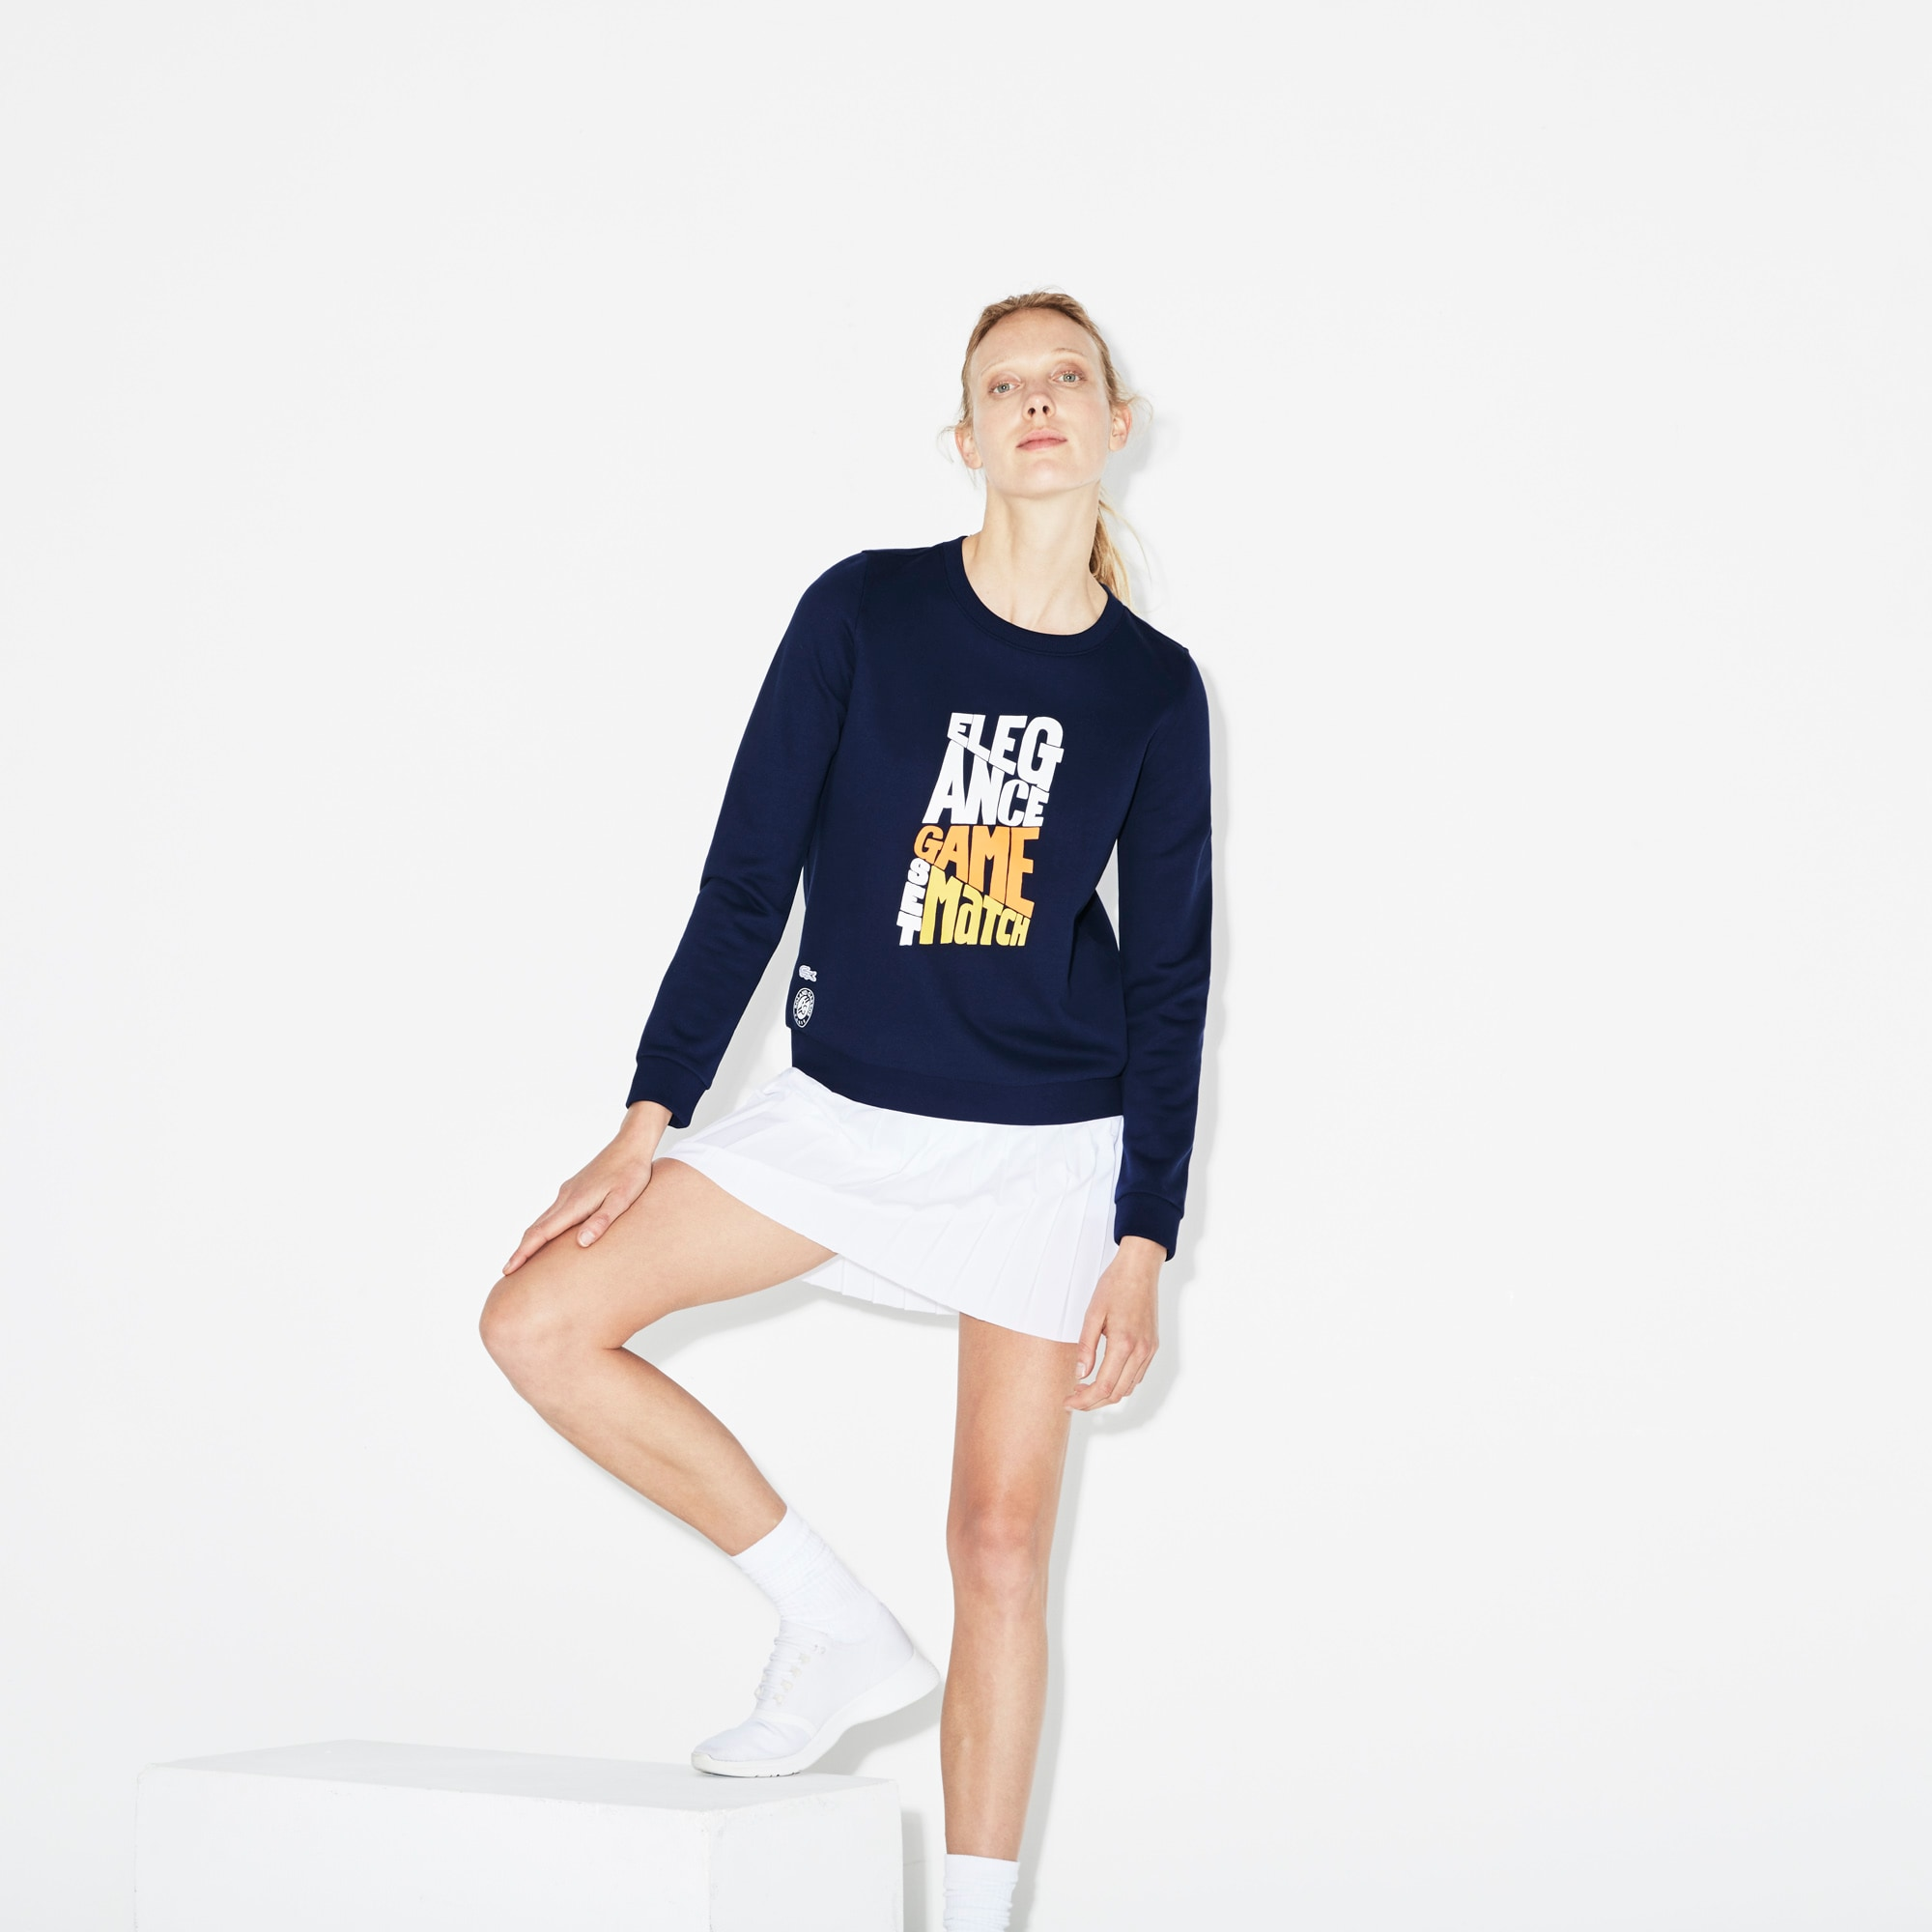 Women's SPORT French Open Edition Sweatshirt